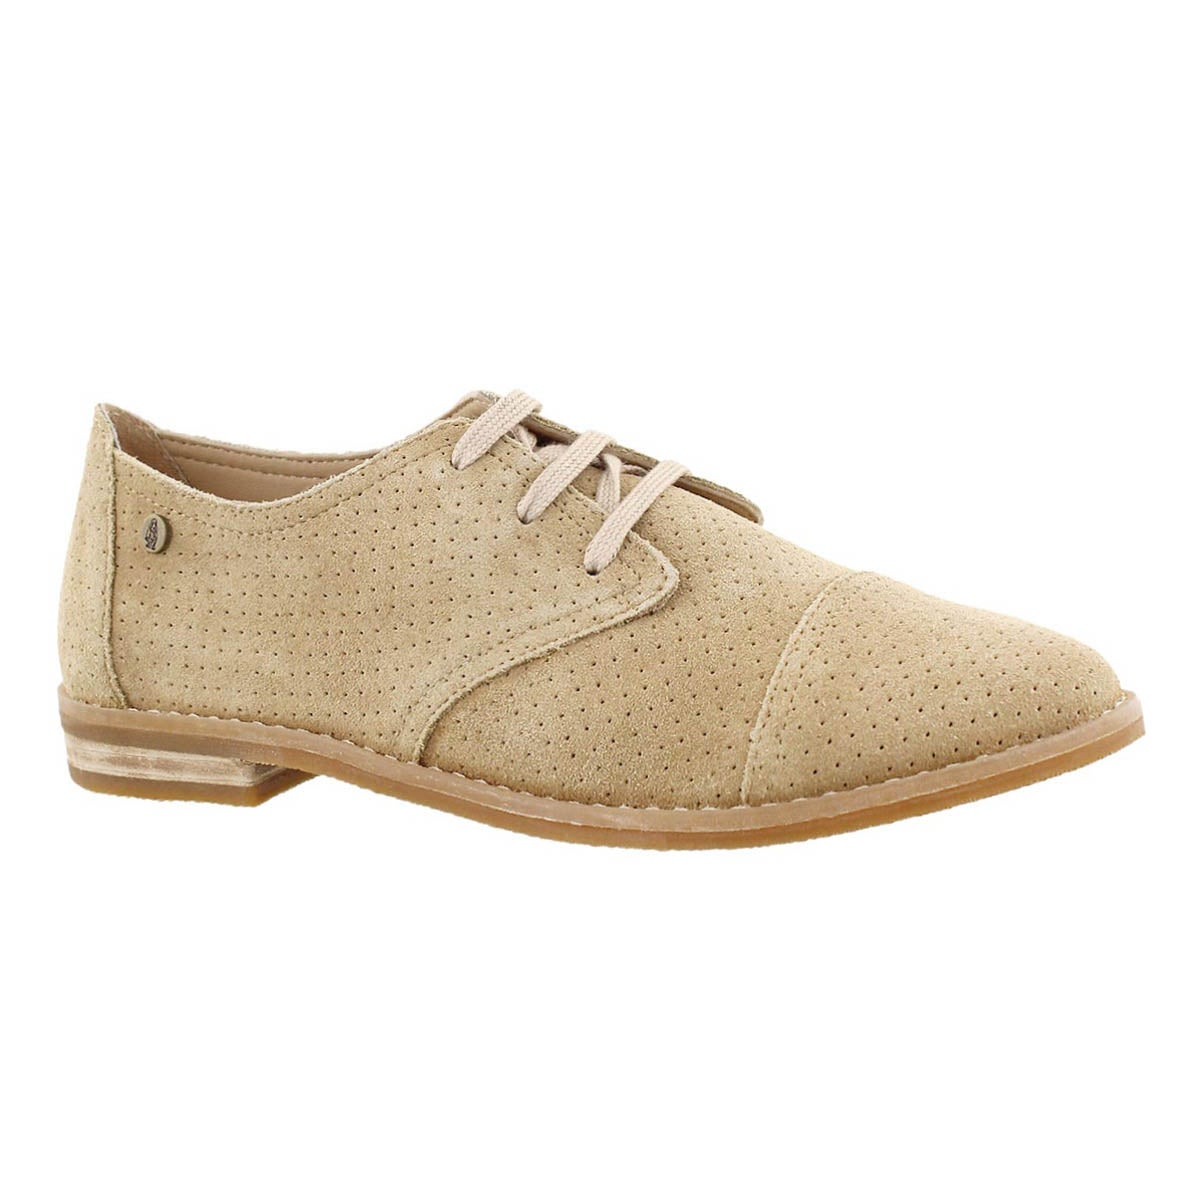 Women's AIDEN CLEVER light tan casual oxfords